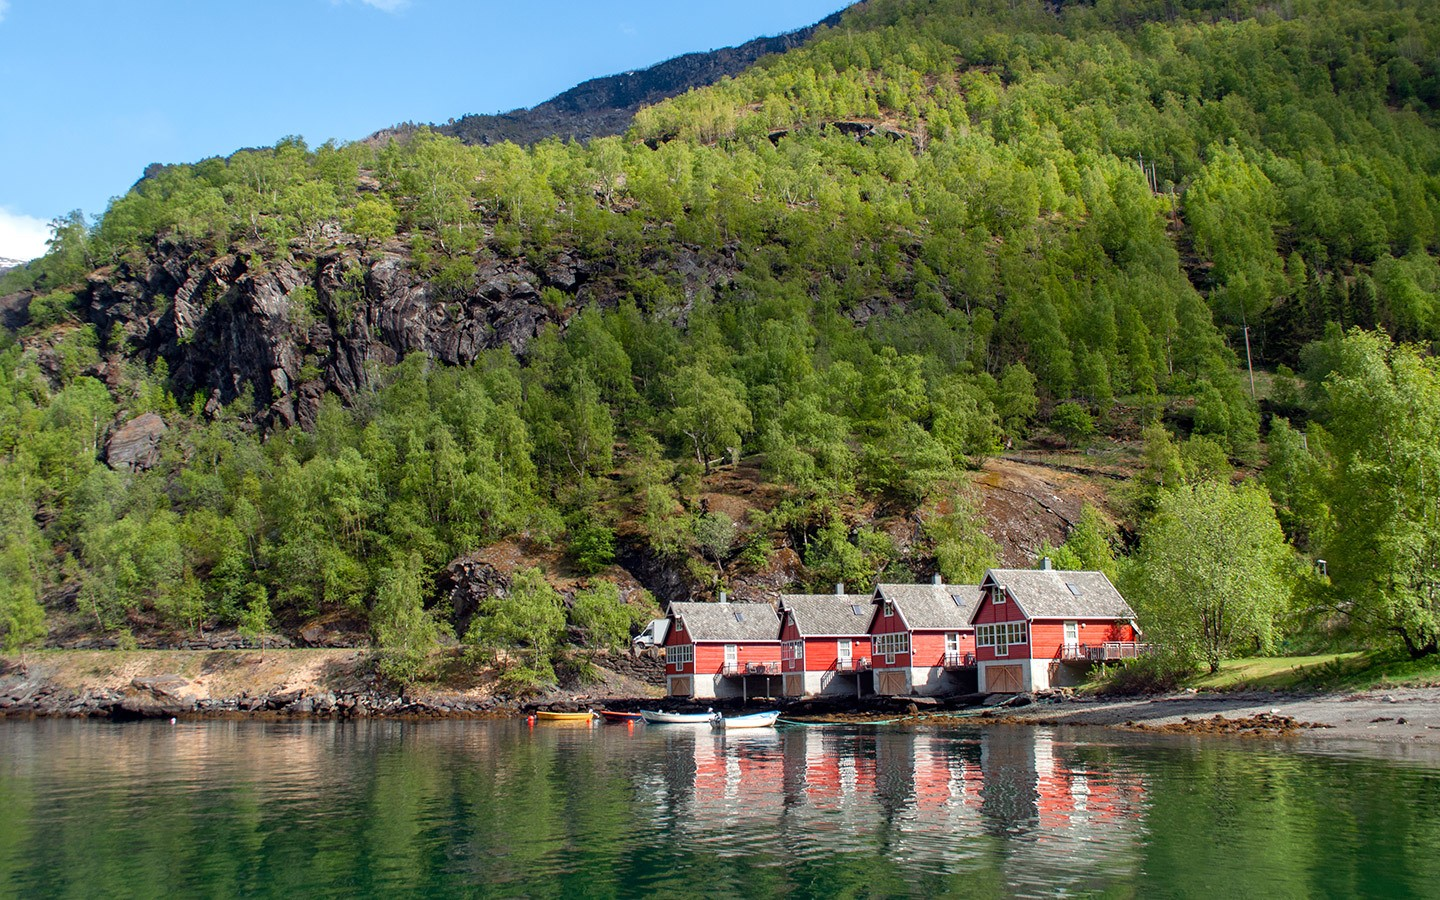 Cabins on the fjord in Flam, Norway